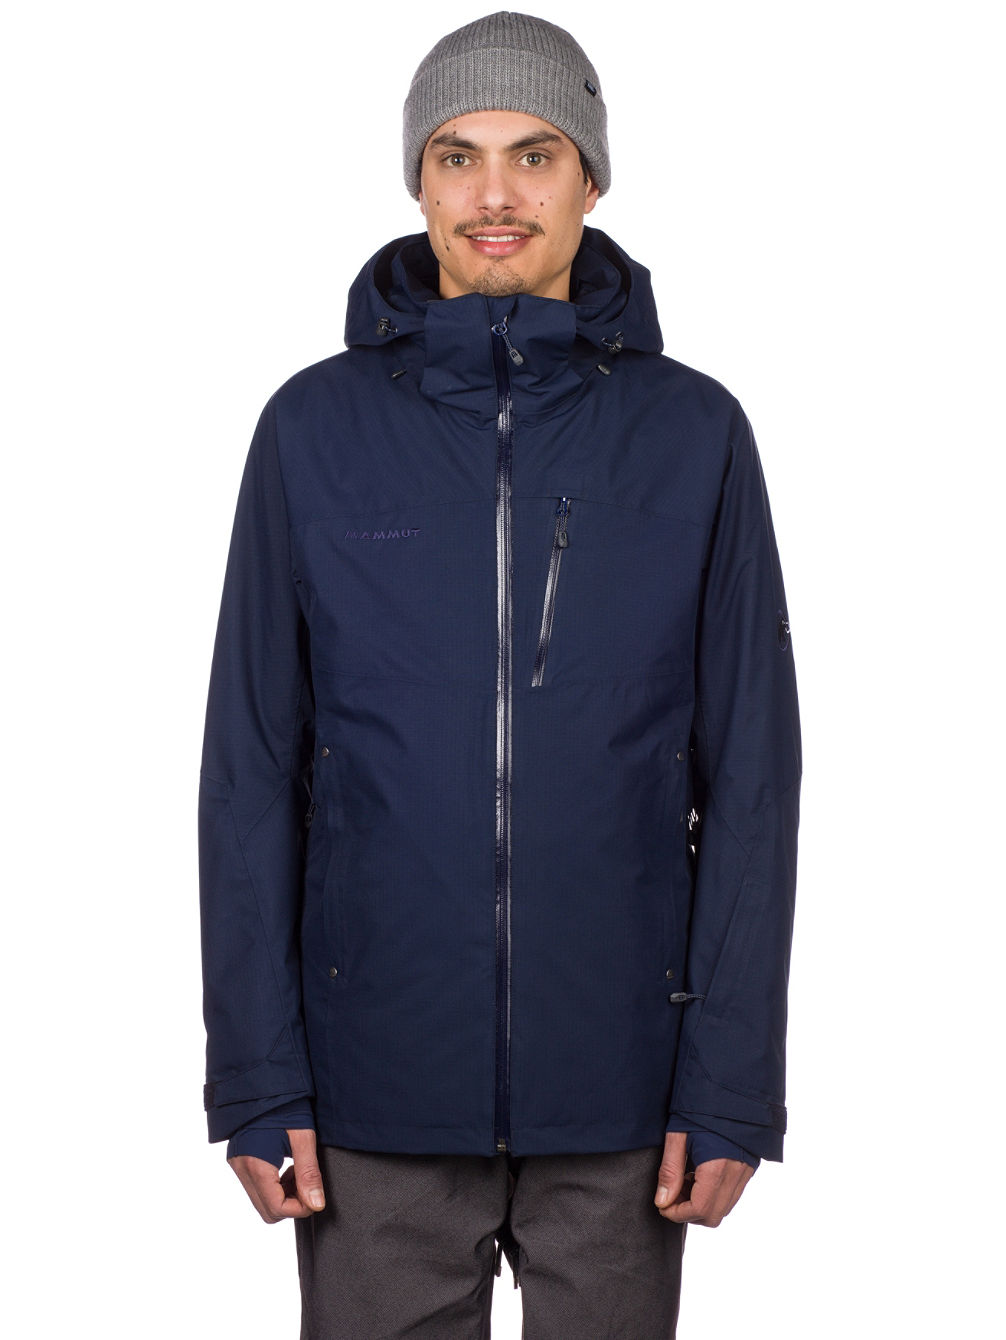 huge selection of ab651 46dea Cruise Hs Thermo Jacket